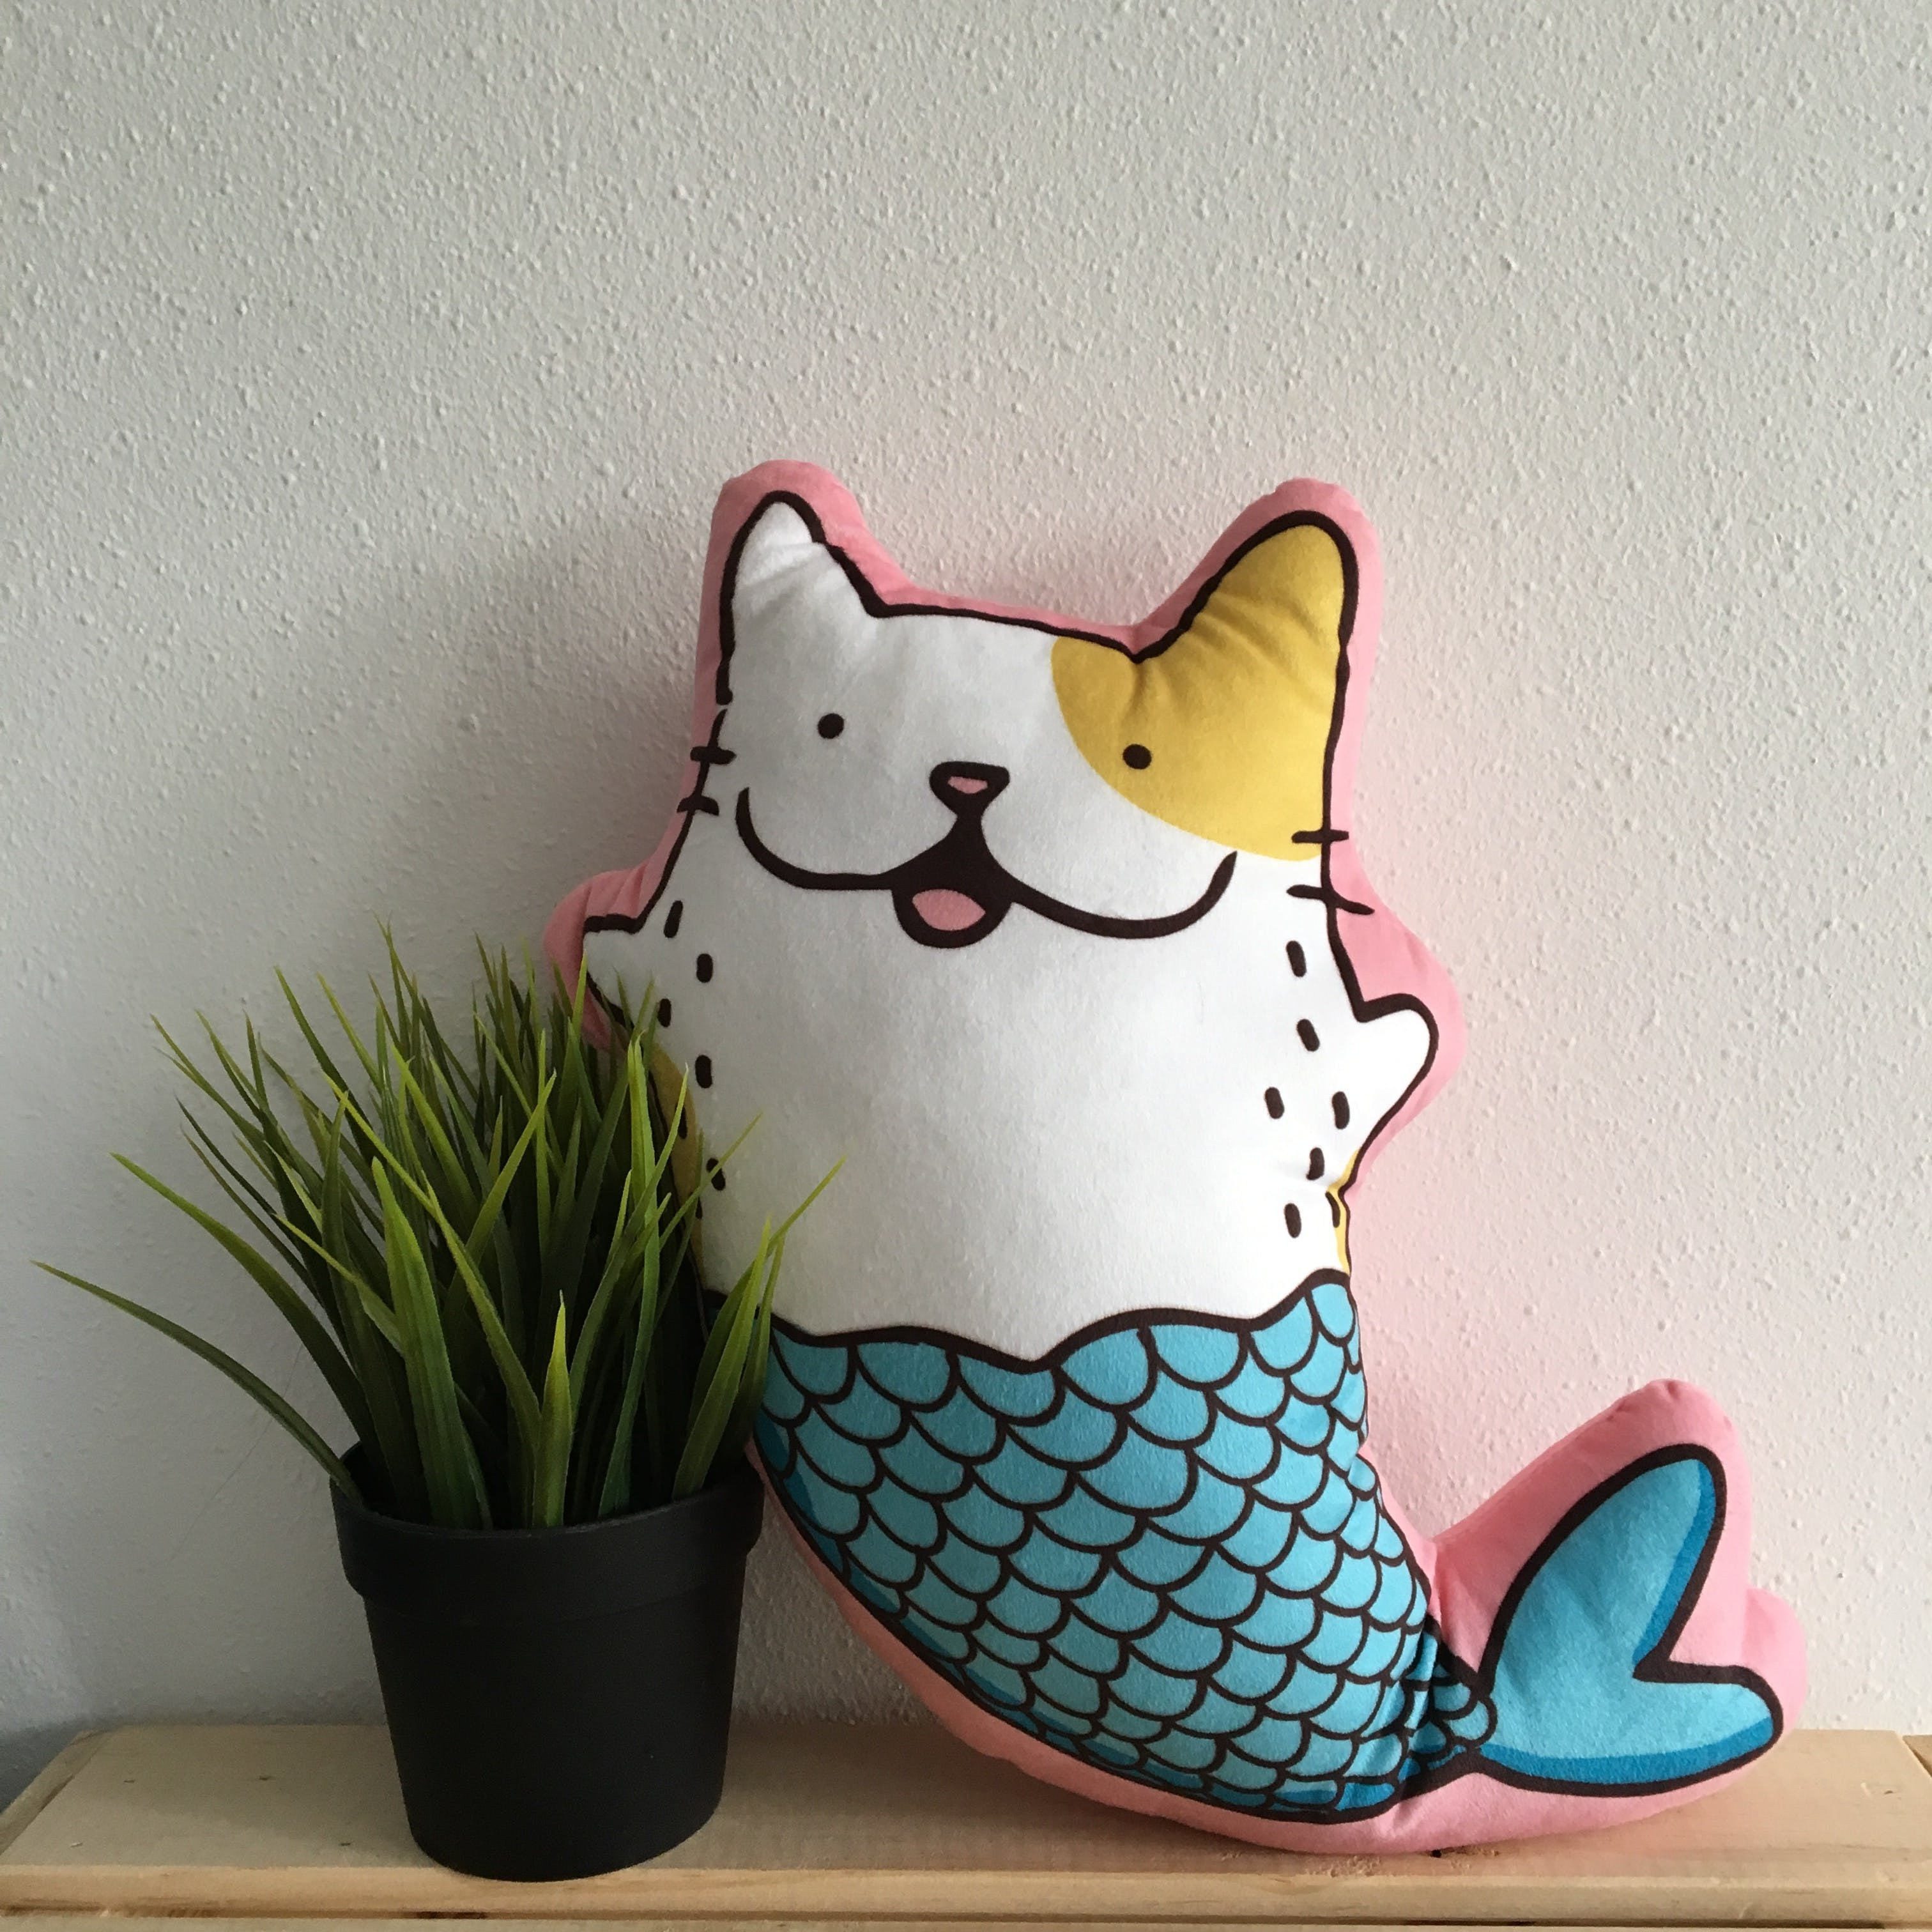 Mermaid Cat Pillow Beside Plant